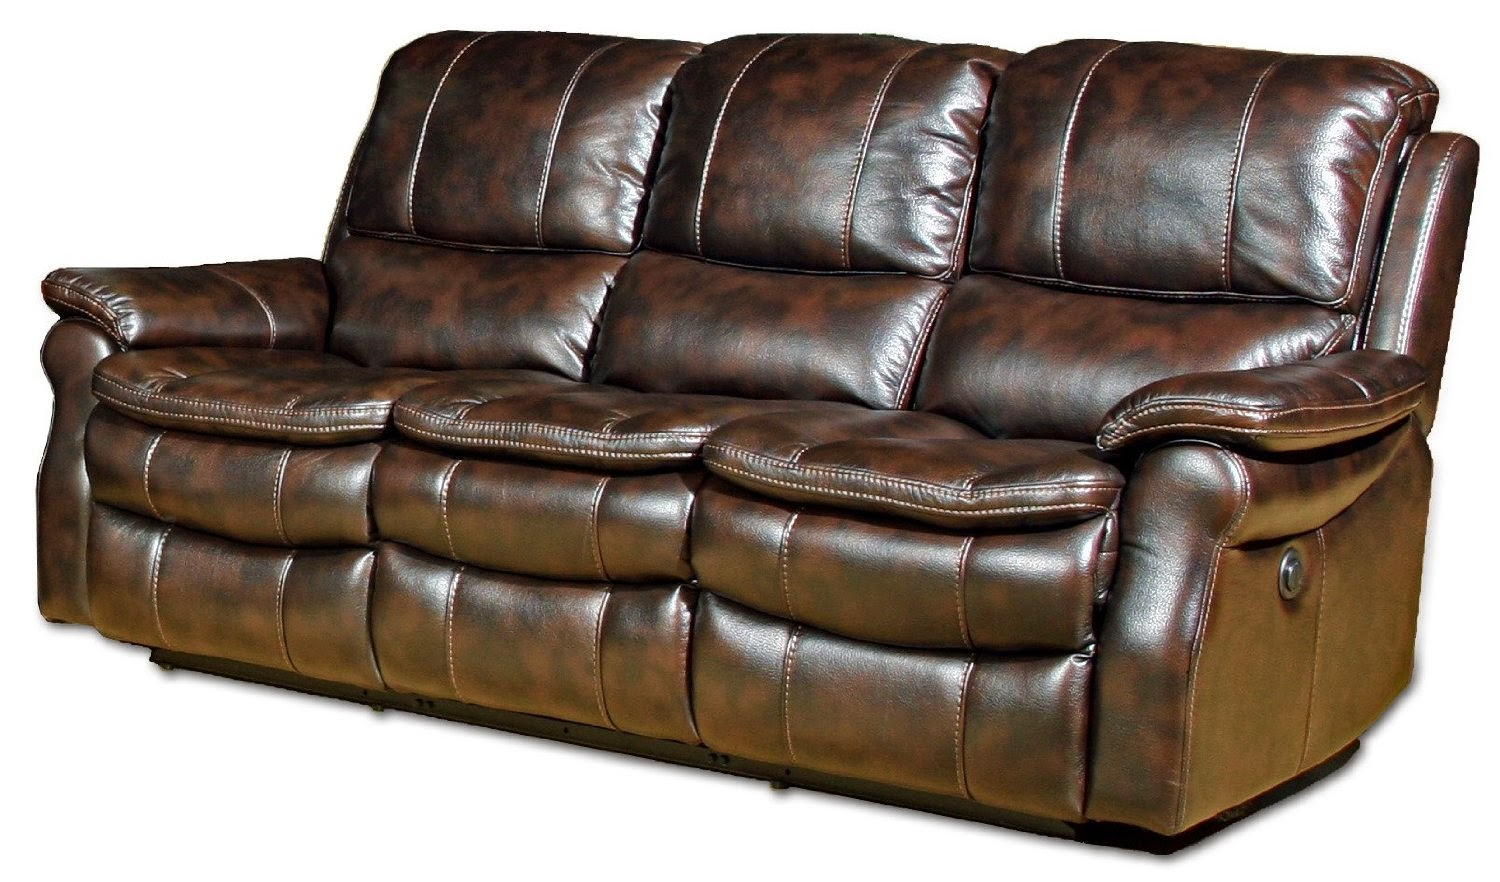 Reclining sofa loveseat and chair sets seth genuine leather power reclining sofa Leather reclining loveseat